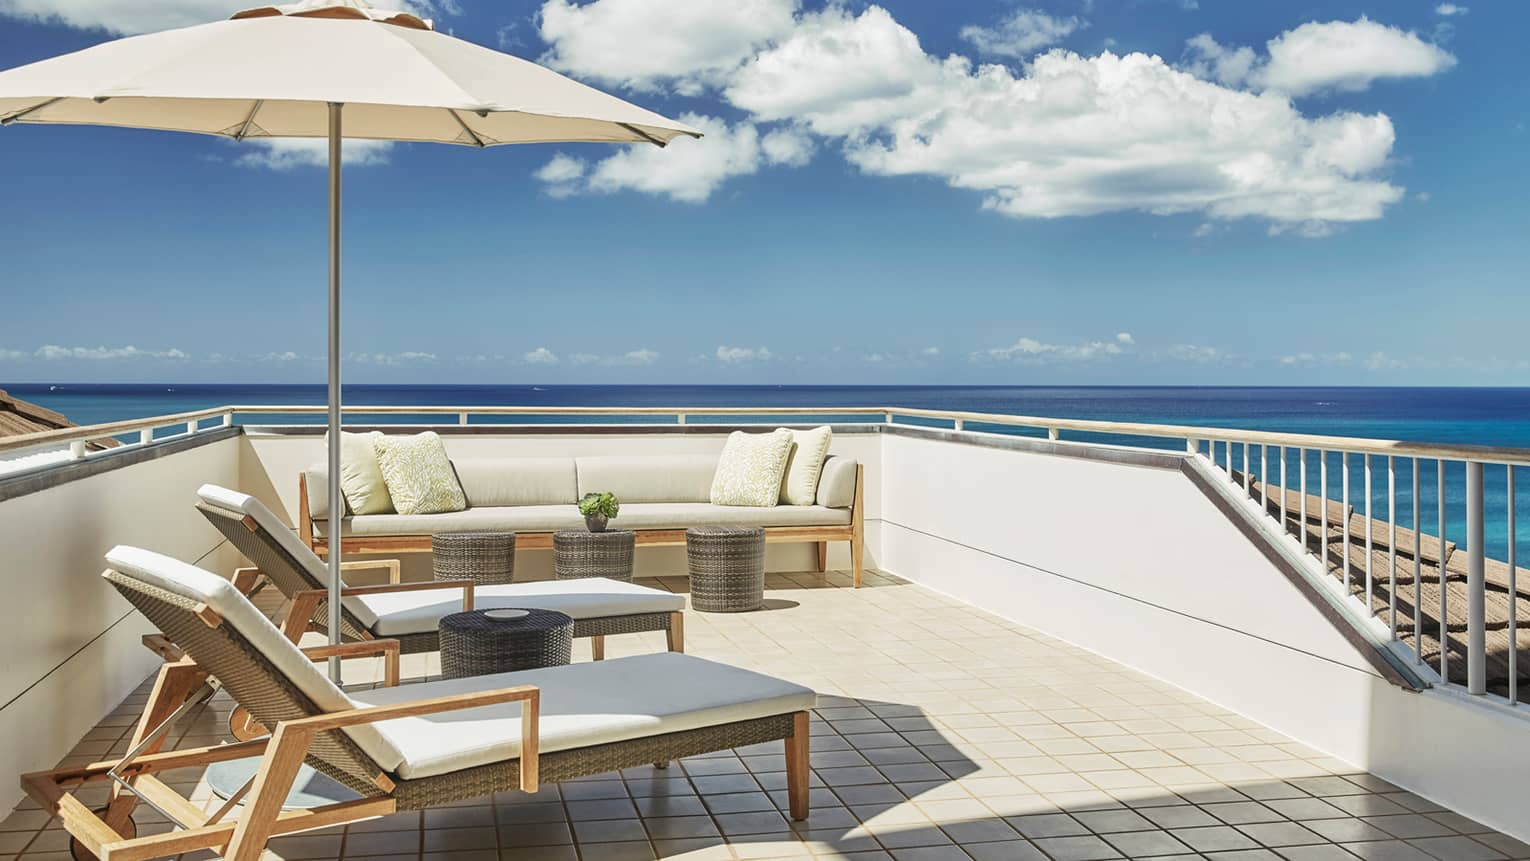 White cushioned wicker patio furniture, umbrella on rooftop balcony